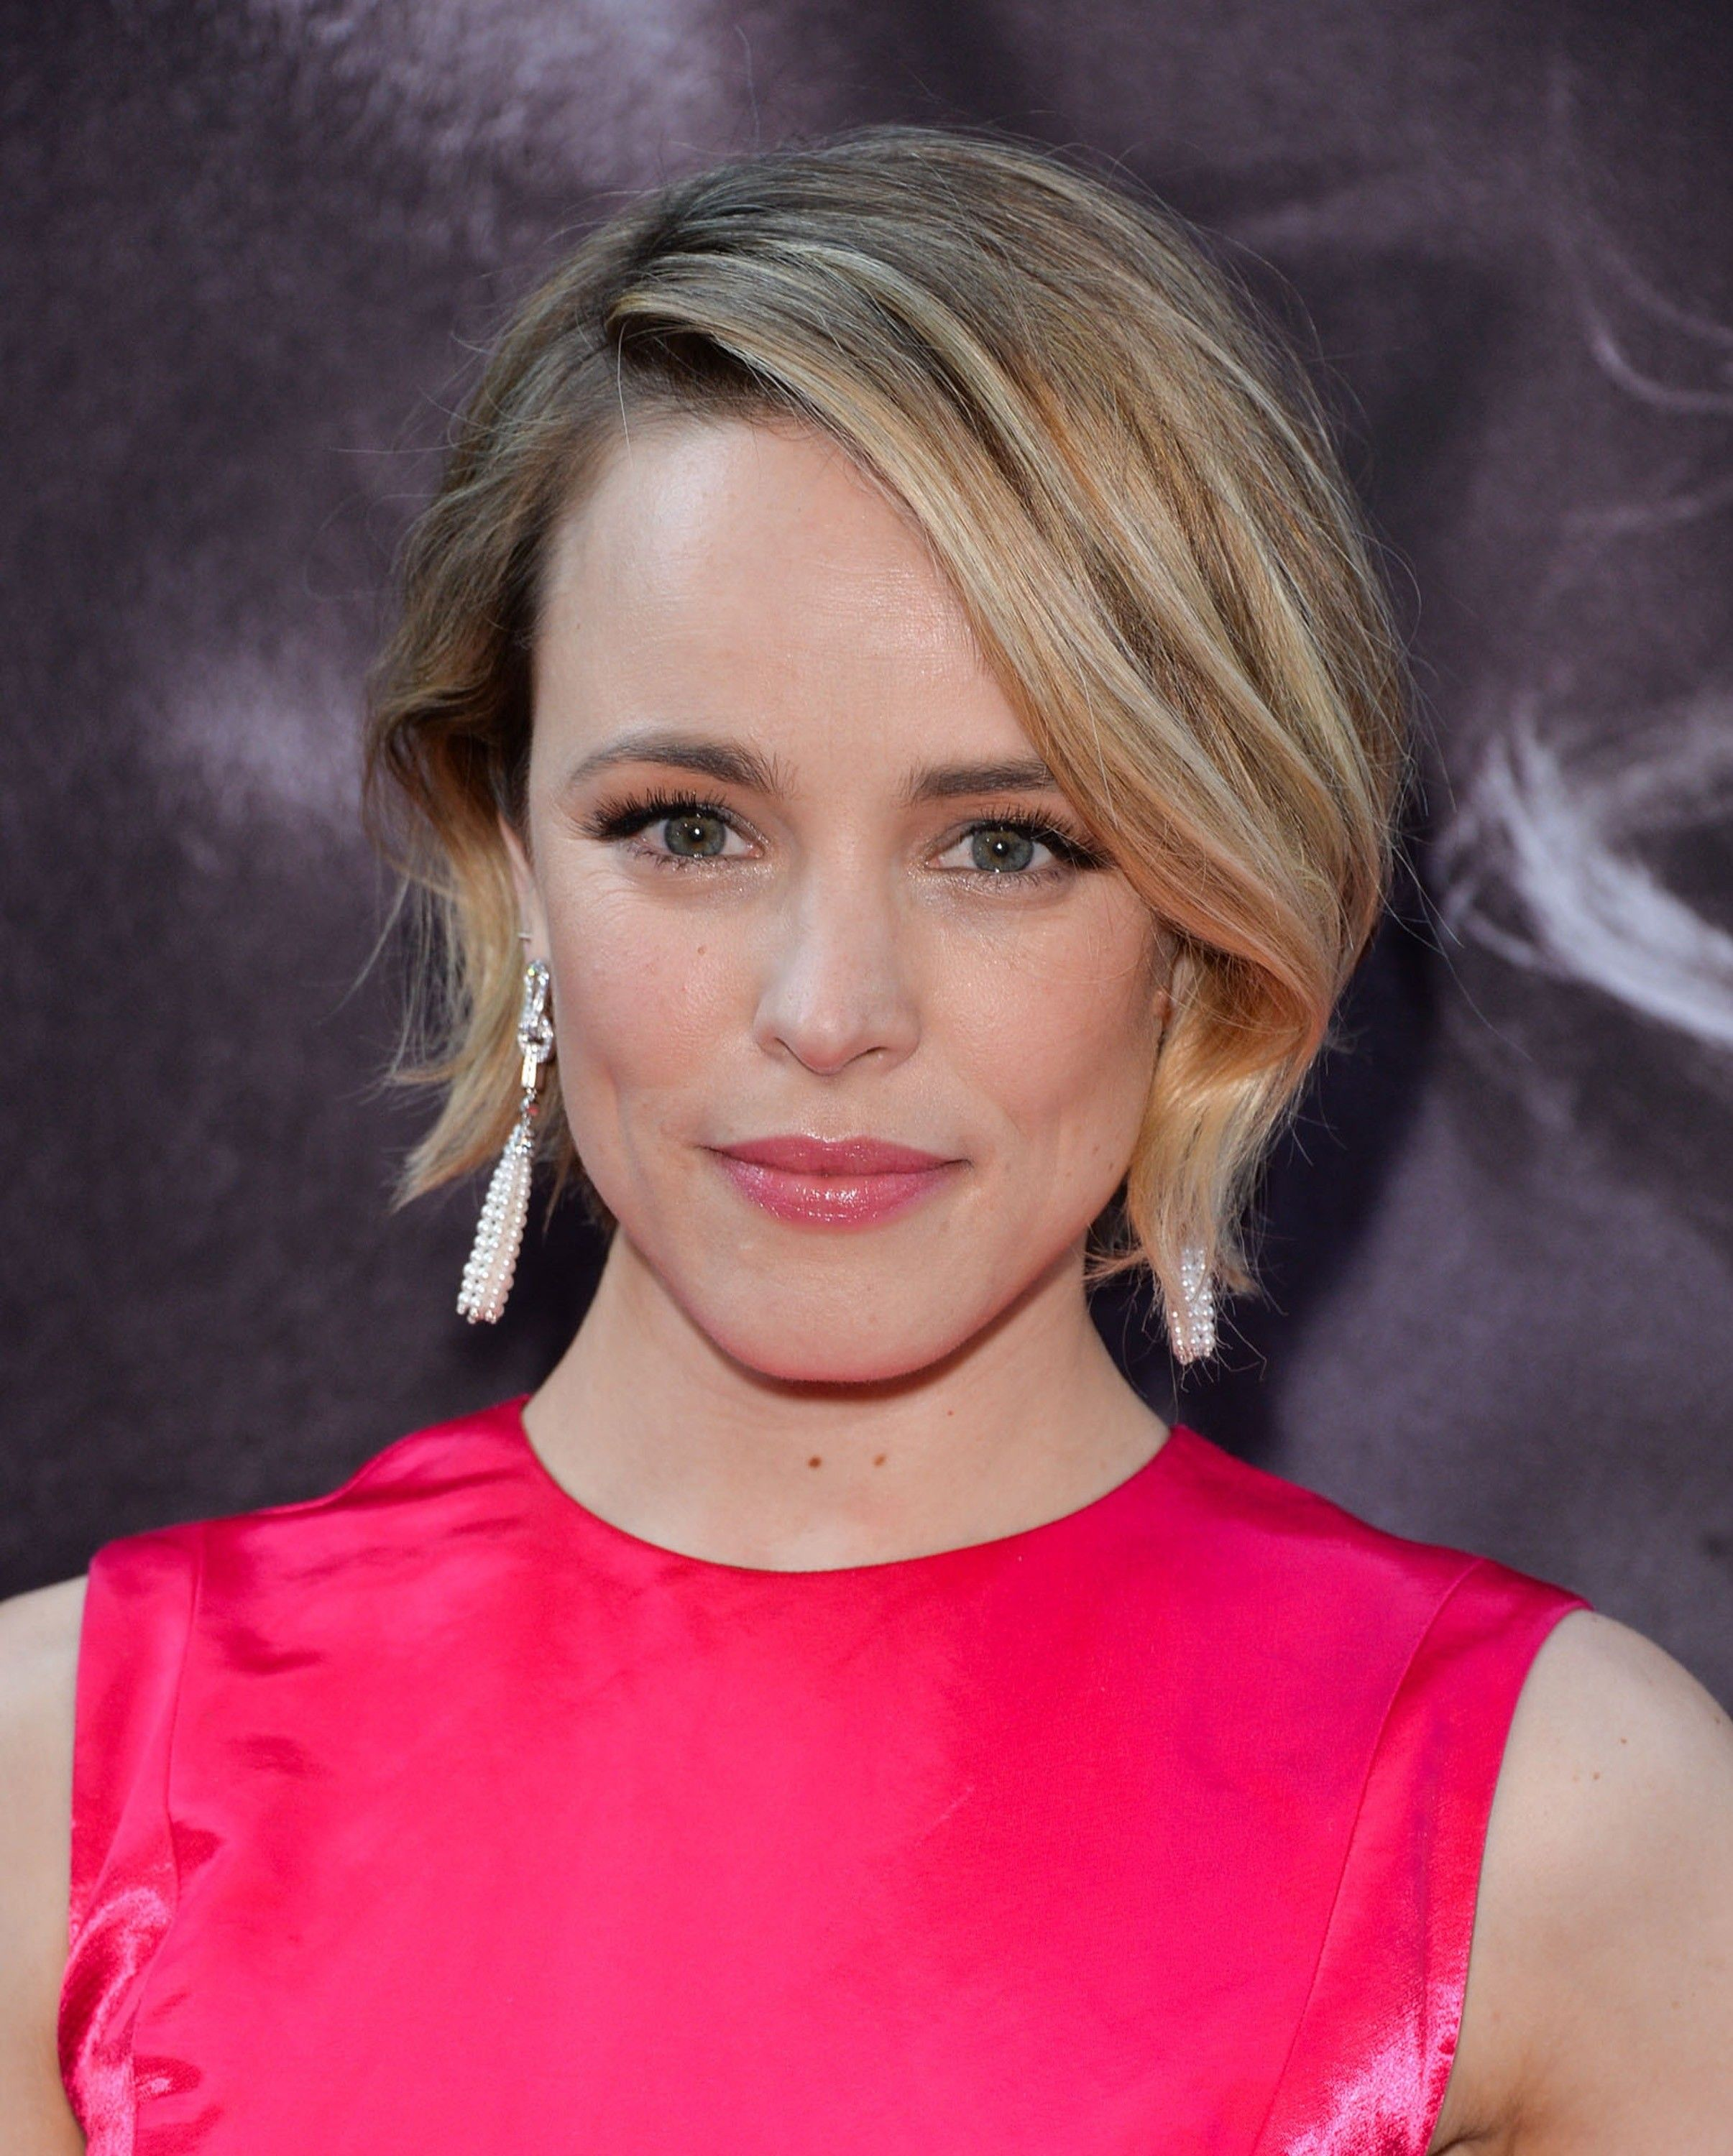 rachel mcadams boyfriendrachel mcadams instagram, rachel mcadams and ryan gosling, rachel mcadams 2016, rachel mcadams movies, rachel mcadams gif, rachel mcadams 2017, rachel mcadams films, rachel mcadams vk, rachel mcadams инстаграм, rachel mcadams true detective, rachel mcadams фильмы, rachel mcadams boyfriend, rachel mcadams dating, rachel mcadams фильмография, rachel mcadams twitter, rachel mcadams wiki, rachel mcadams kinopoisk, rachel mcadams gallery, rachel mcadams biography, rachel mcadams gif hunt